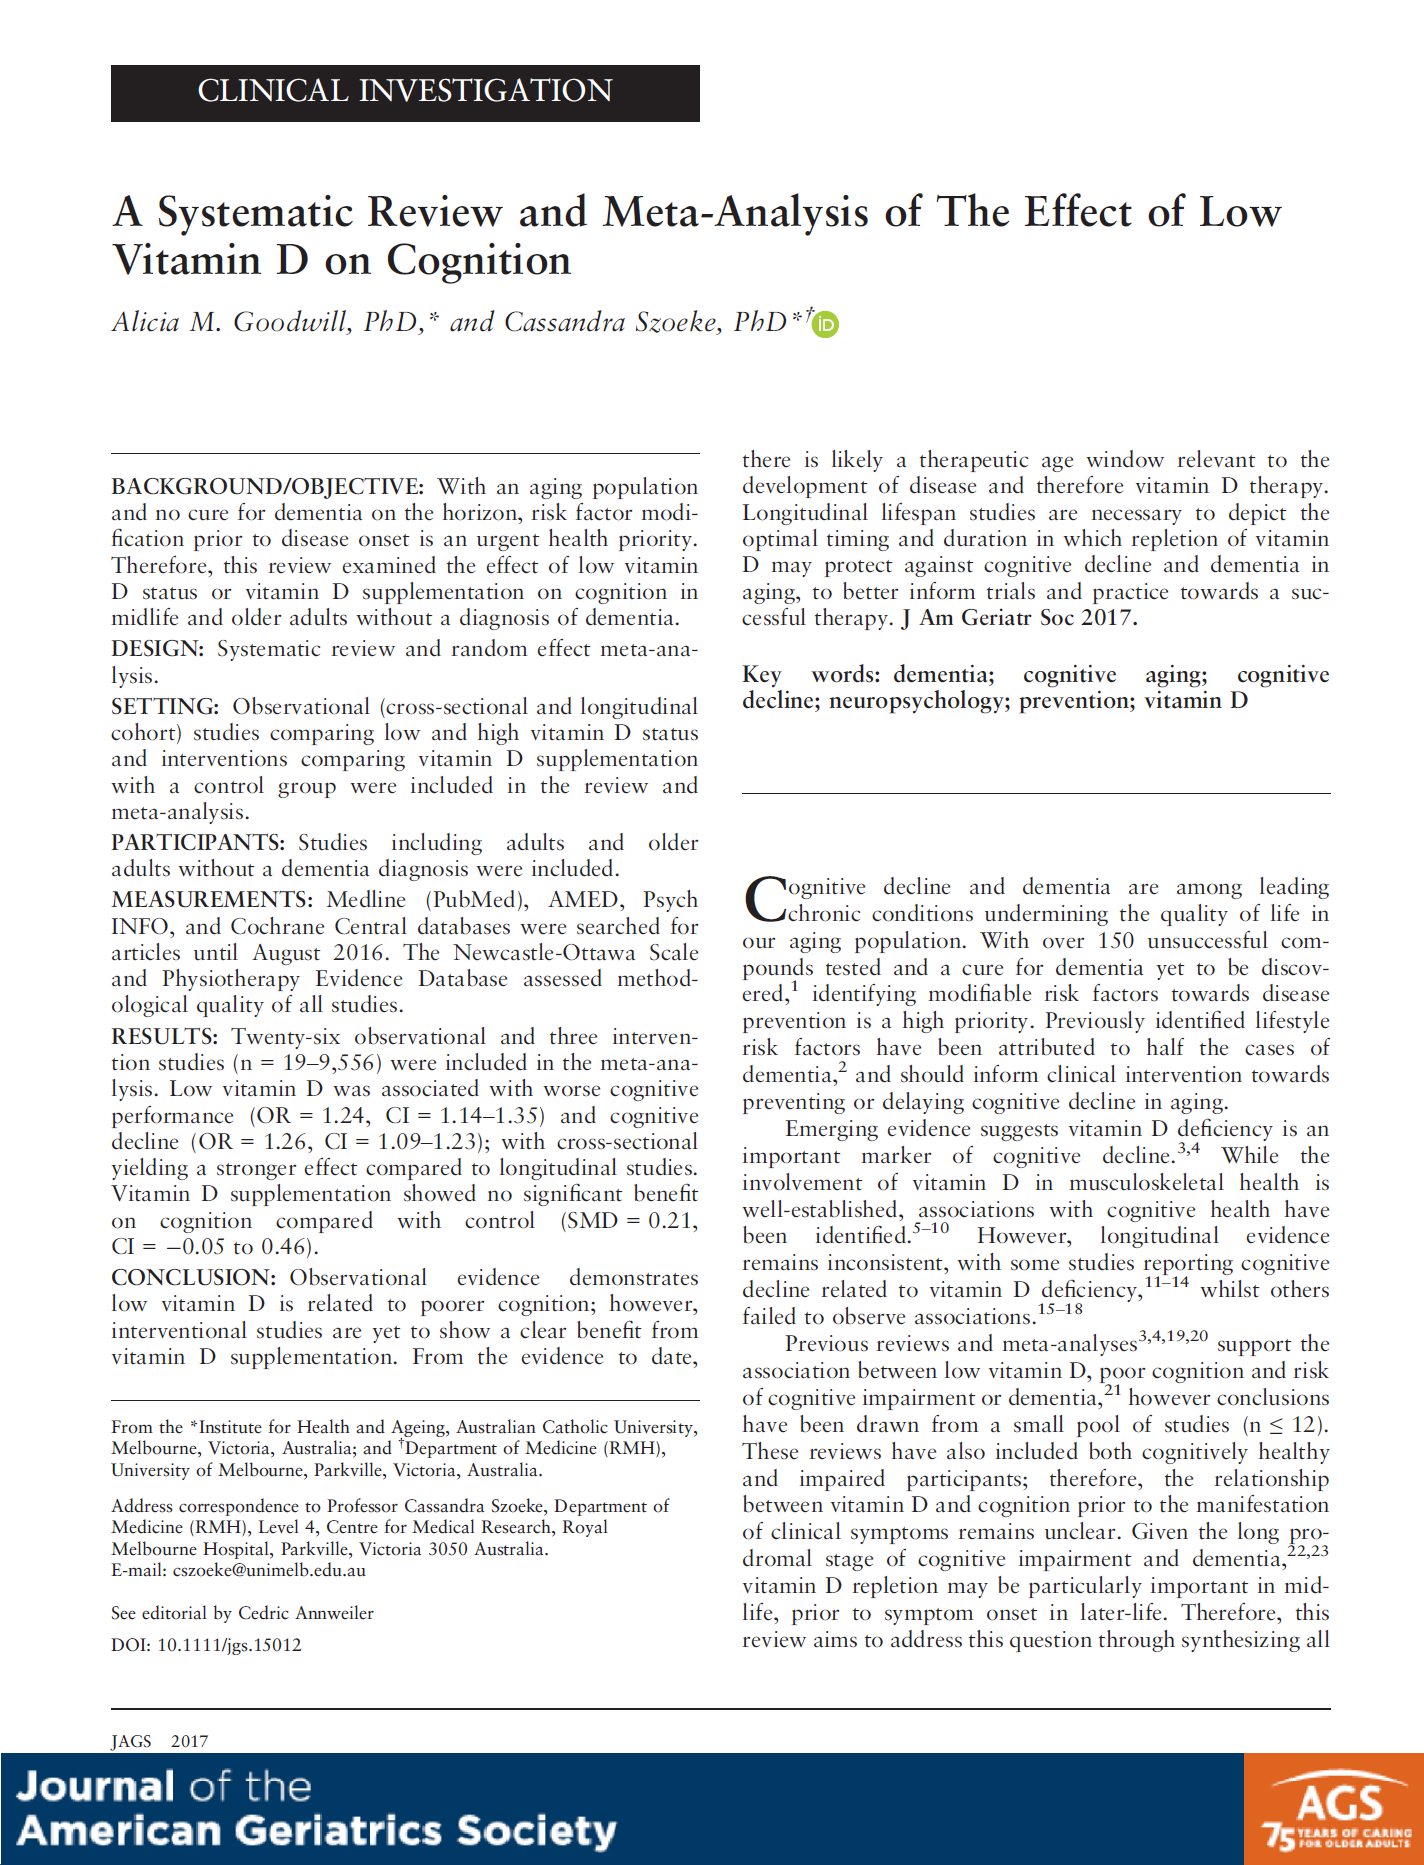 A Systematic Review and Meta-Analysis of The Effect of Low Vitamin D on Cognition - This review examined the effect of low vitamin D status or vitamin D supplementation on cognition in midlife and older adults without a diagnosis of dementia. Medline (PubMed), AMED, Psych INFO, and Cochrane Central databases were searched for articles until August 2016. Observational evidence demonstrates low vitamin D is related to poorer cognition; however, interventional studies are yet to show a clear benefit from vitamin D supplementation.Citation: Goodwill, A.M., et al (2017). A systematic review and meta-analysis of the effect of low vitamin D on cognition. Journal of the American Geriatrics Society, in press, doi: 10.1111/jgs.15012.